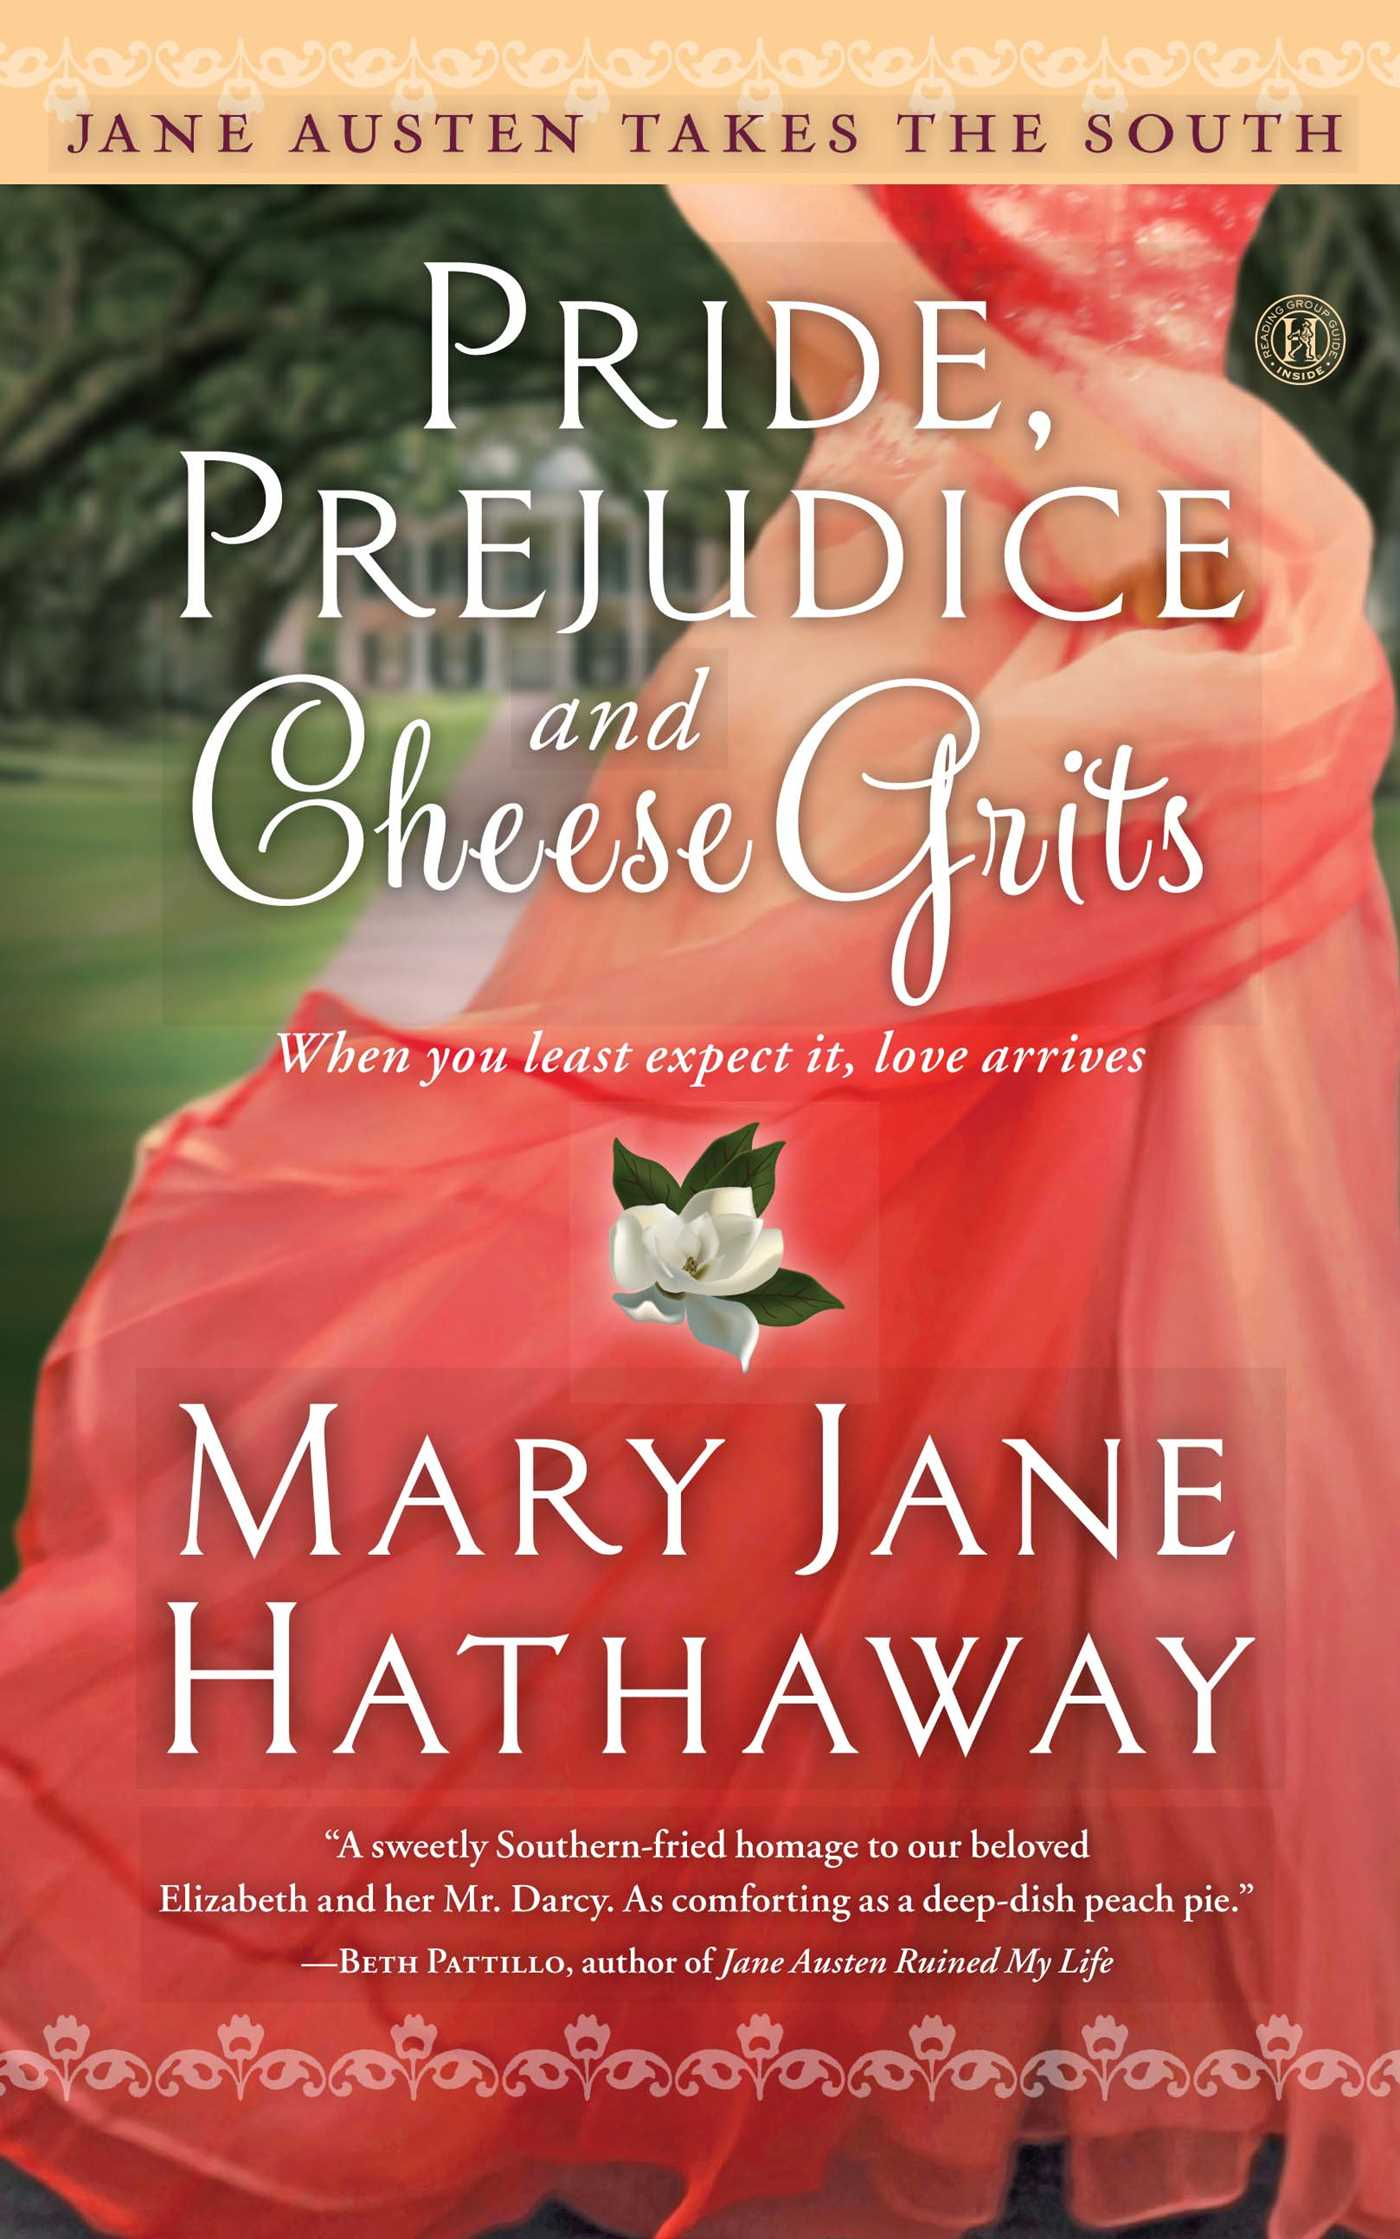 Pride prejudice and cheese grits 9781476776927 hr